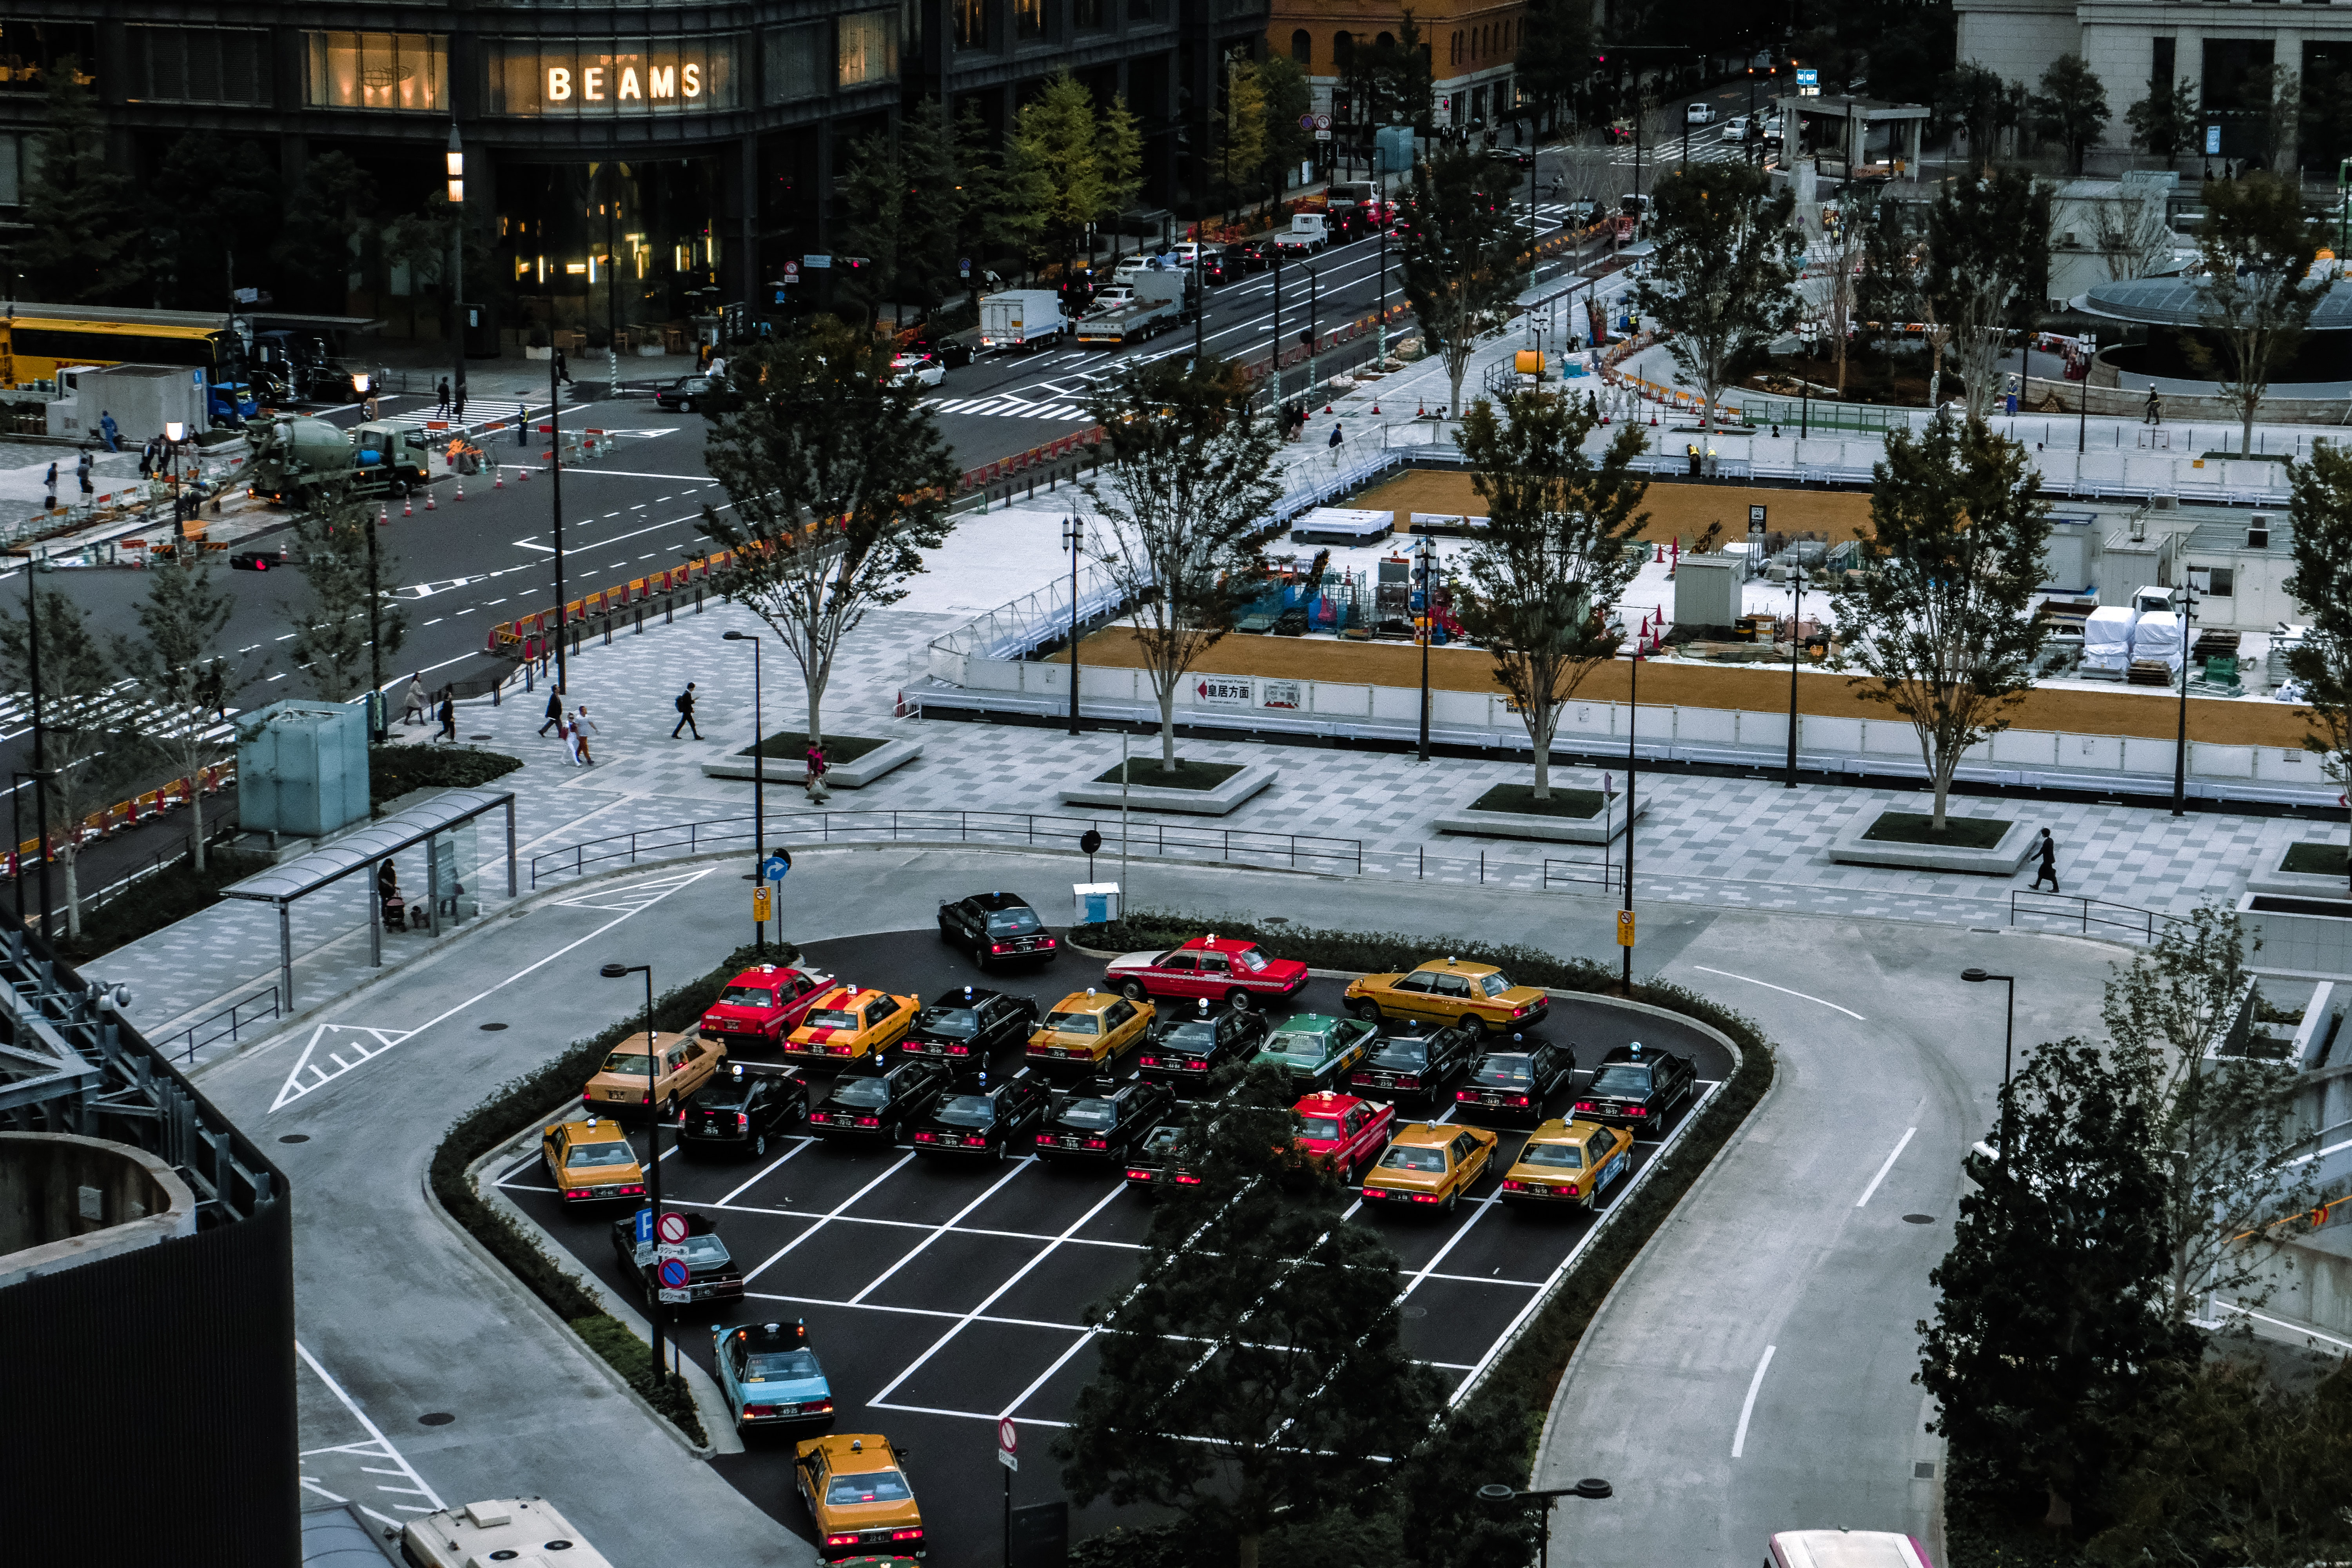 aerial photography of vehicles parked on parking lot